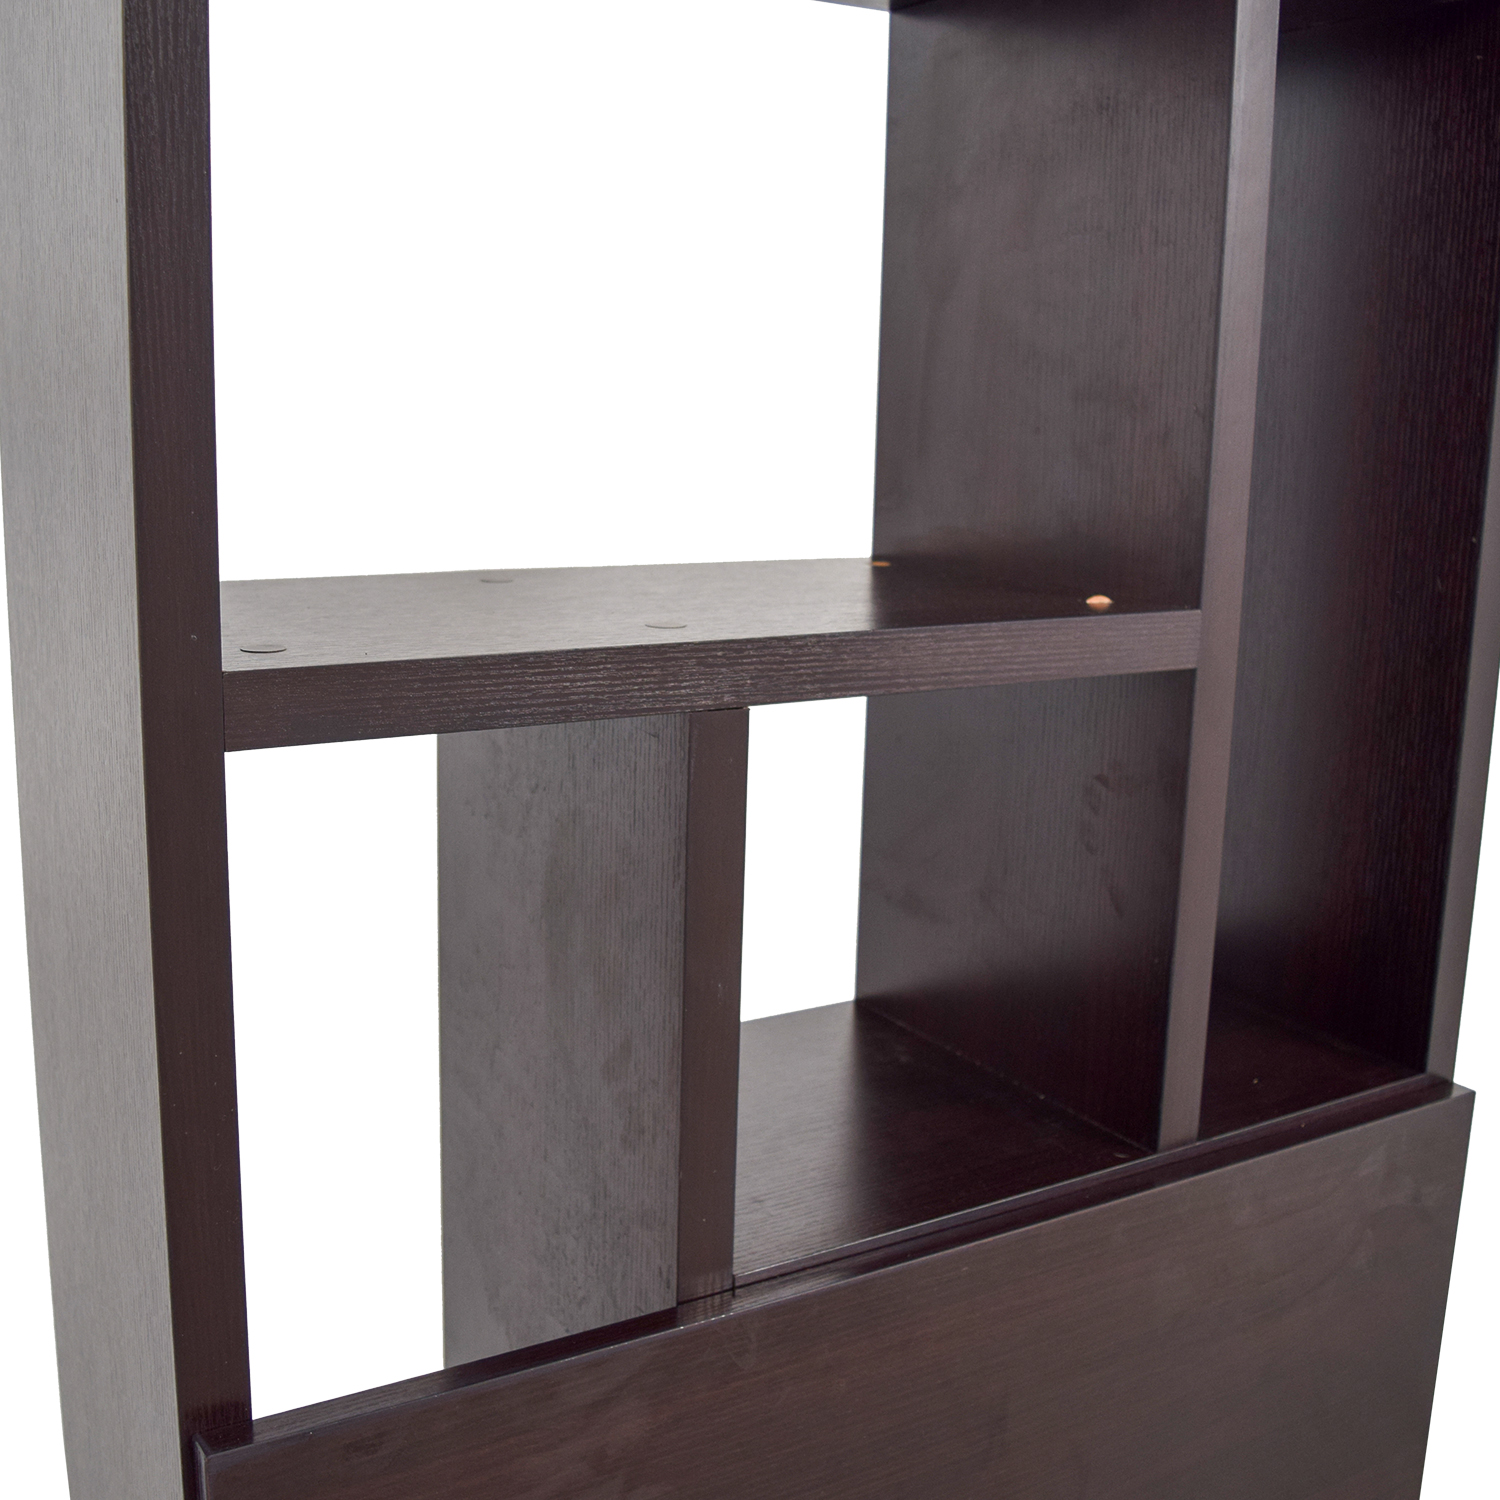 Straight from the Crate Bookshelf with Storage / Bookcases & Shelving